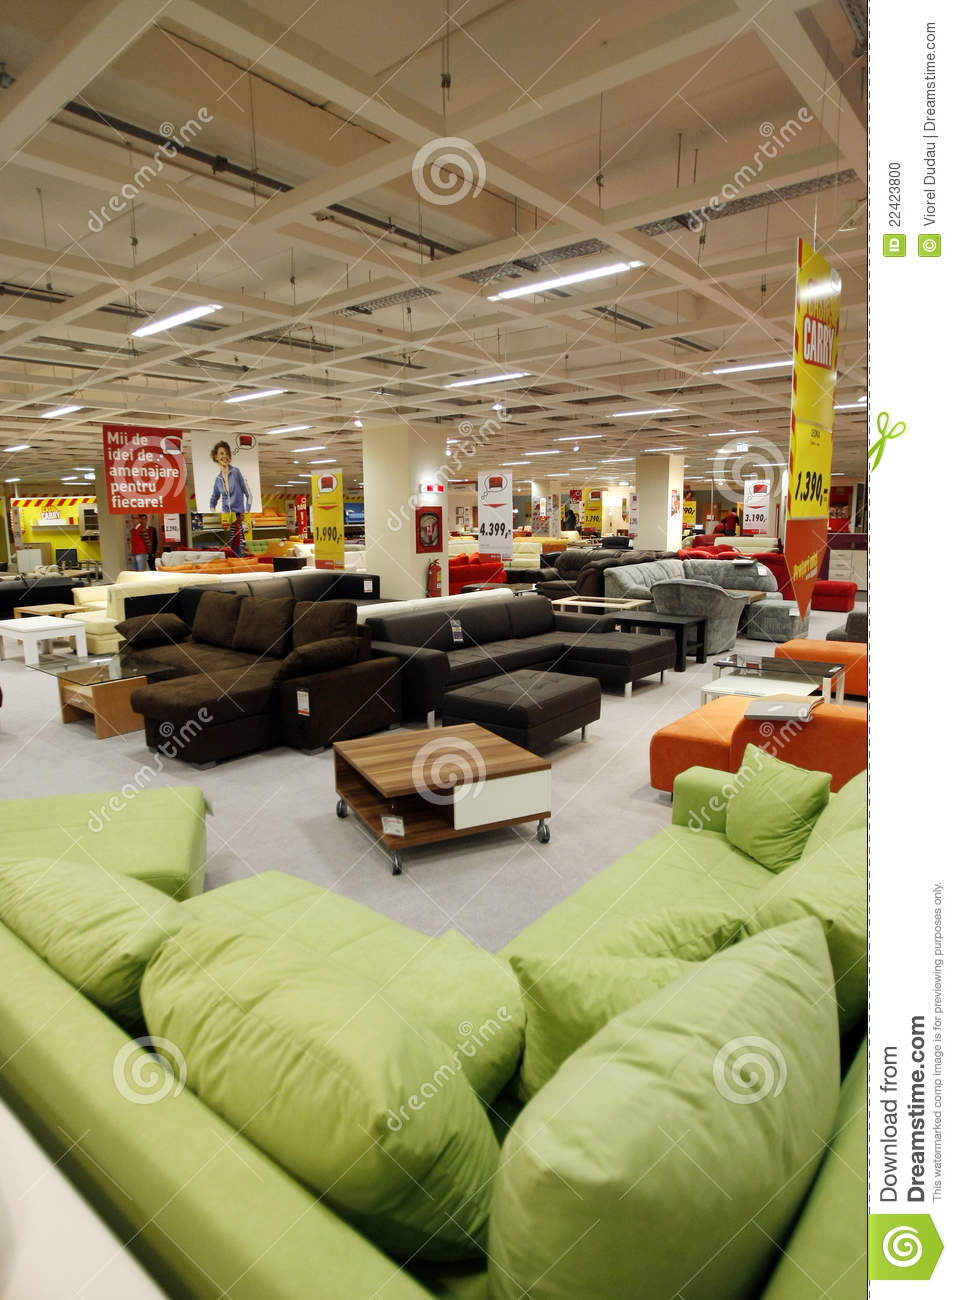 Sofas Kika Couches And Sofas Store Editorial Image Image Of Panoramic 22423800